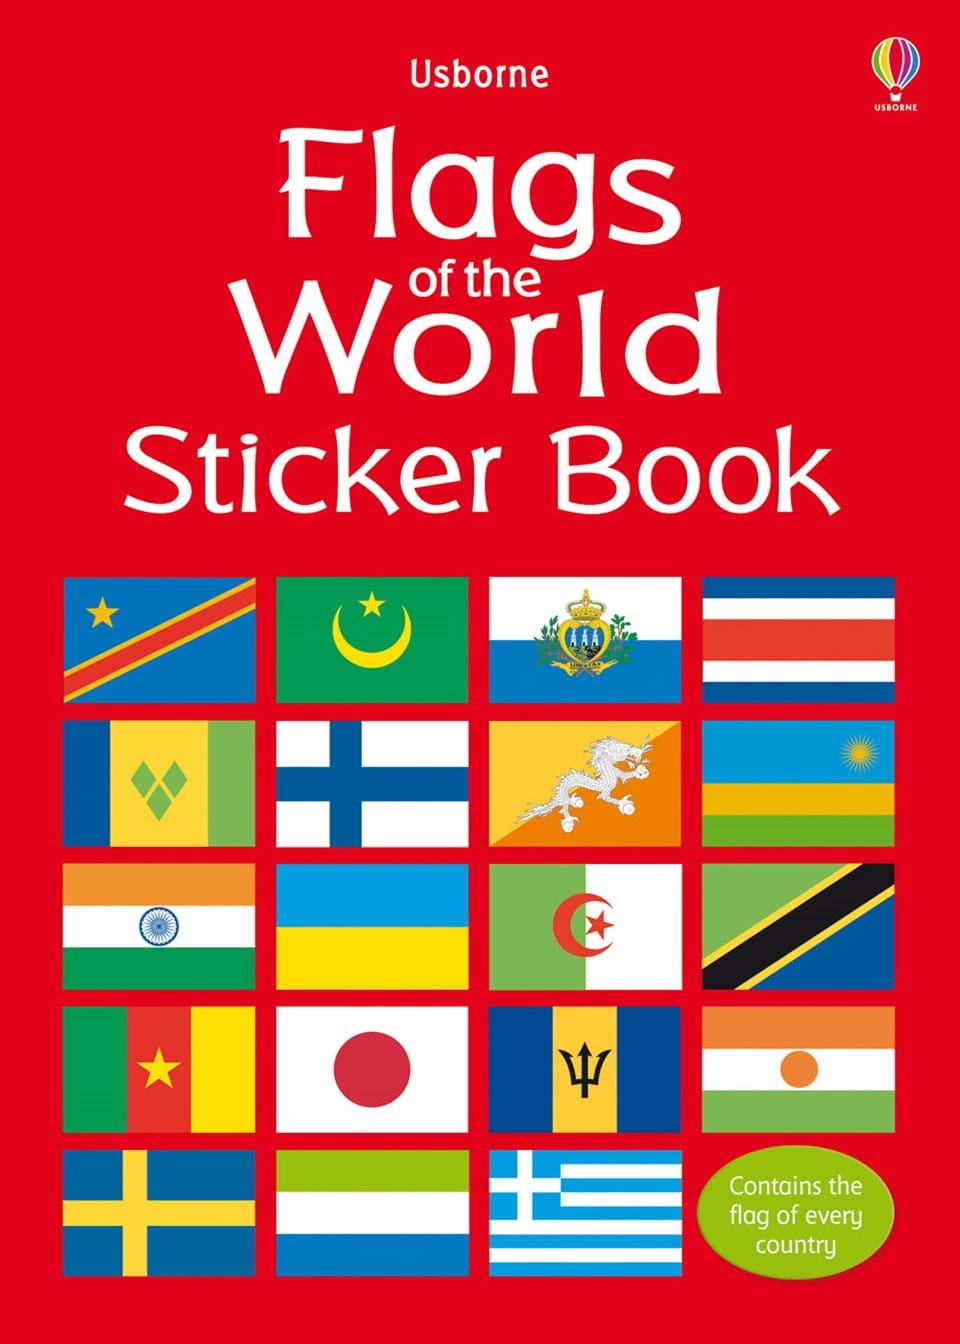 flags-of-the-world-sticker-book